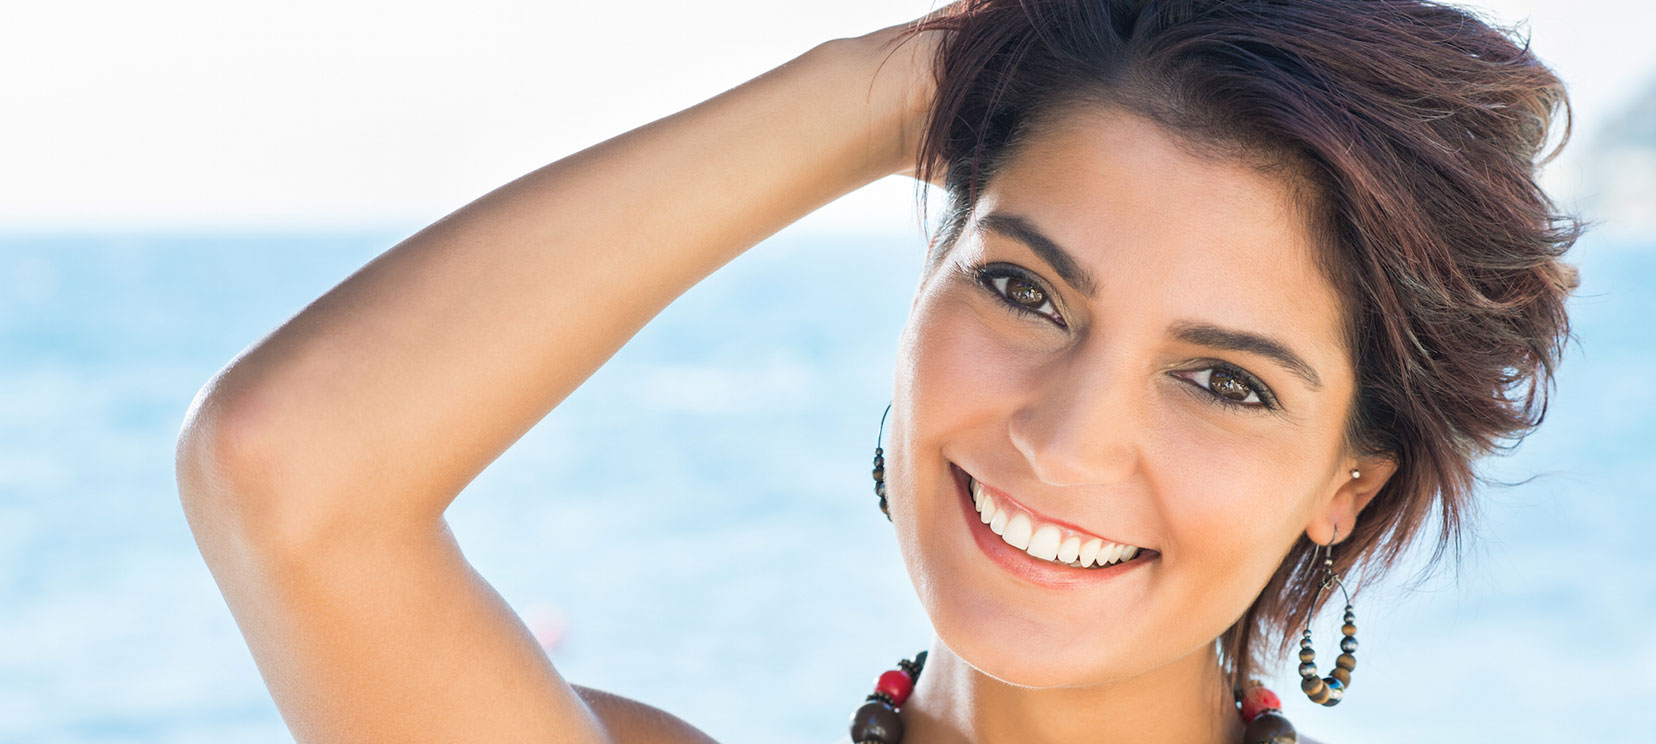 Happy Woman Smiling on Beach Beautiful Healthy Teeth